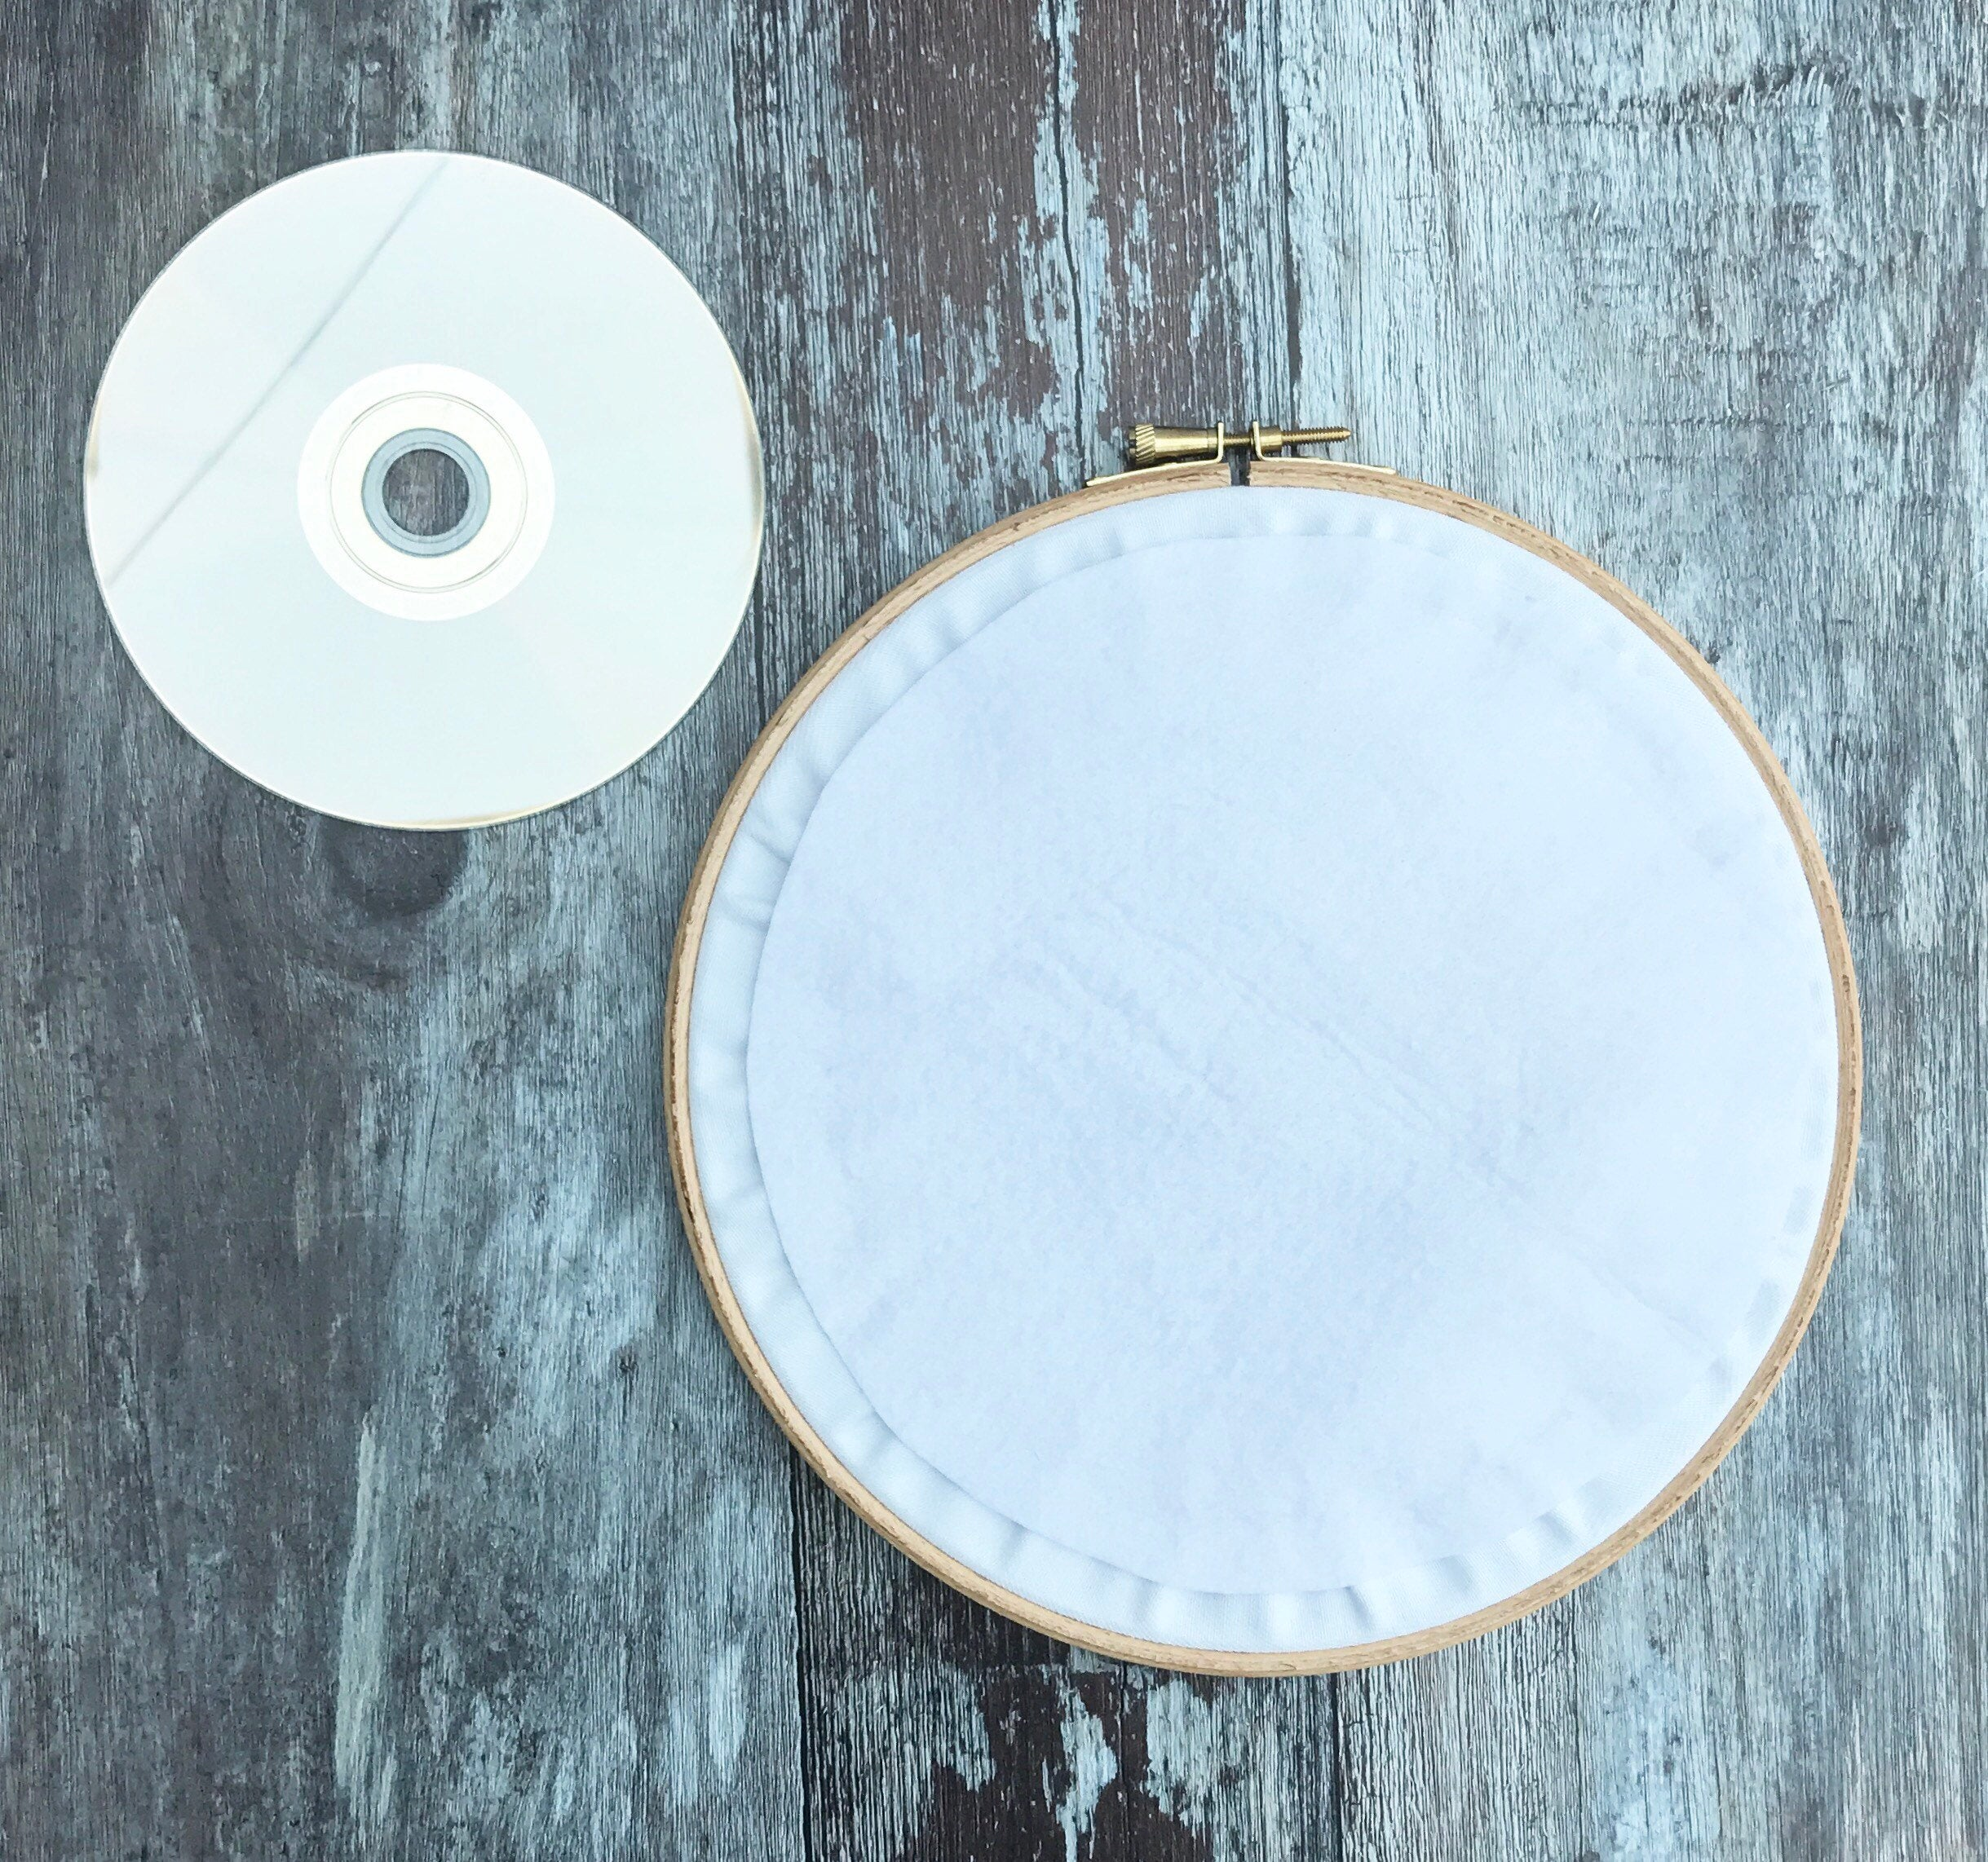 I do what I want, Embroidery hoop art